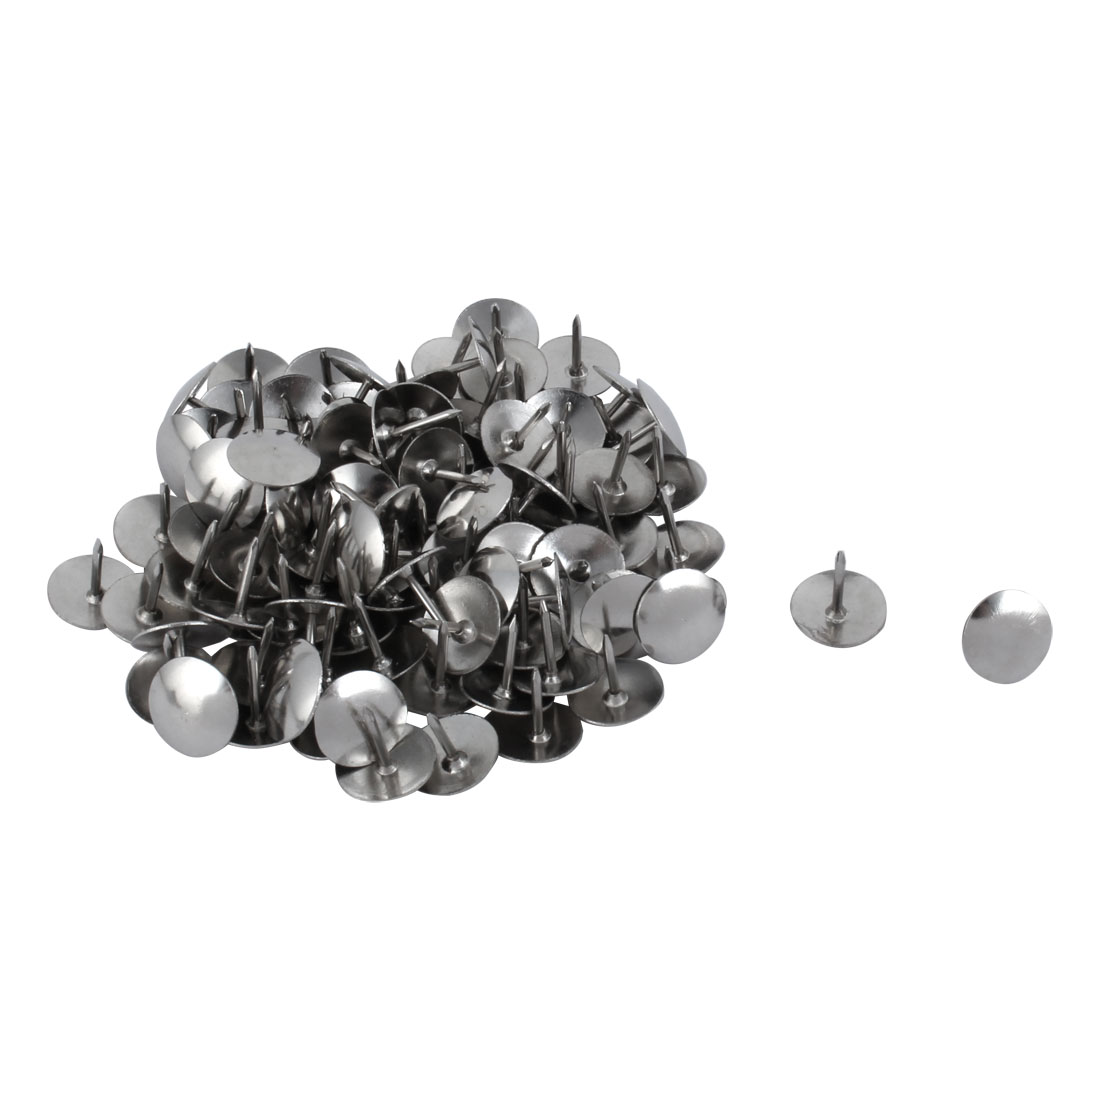 91PCS Silver Tone Metal Notice Board Desk Thumb Tacks Pins